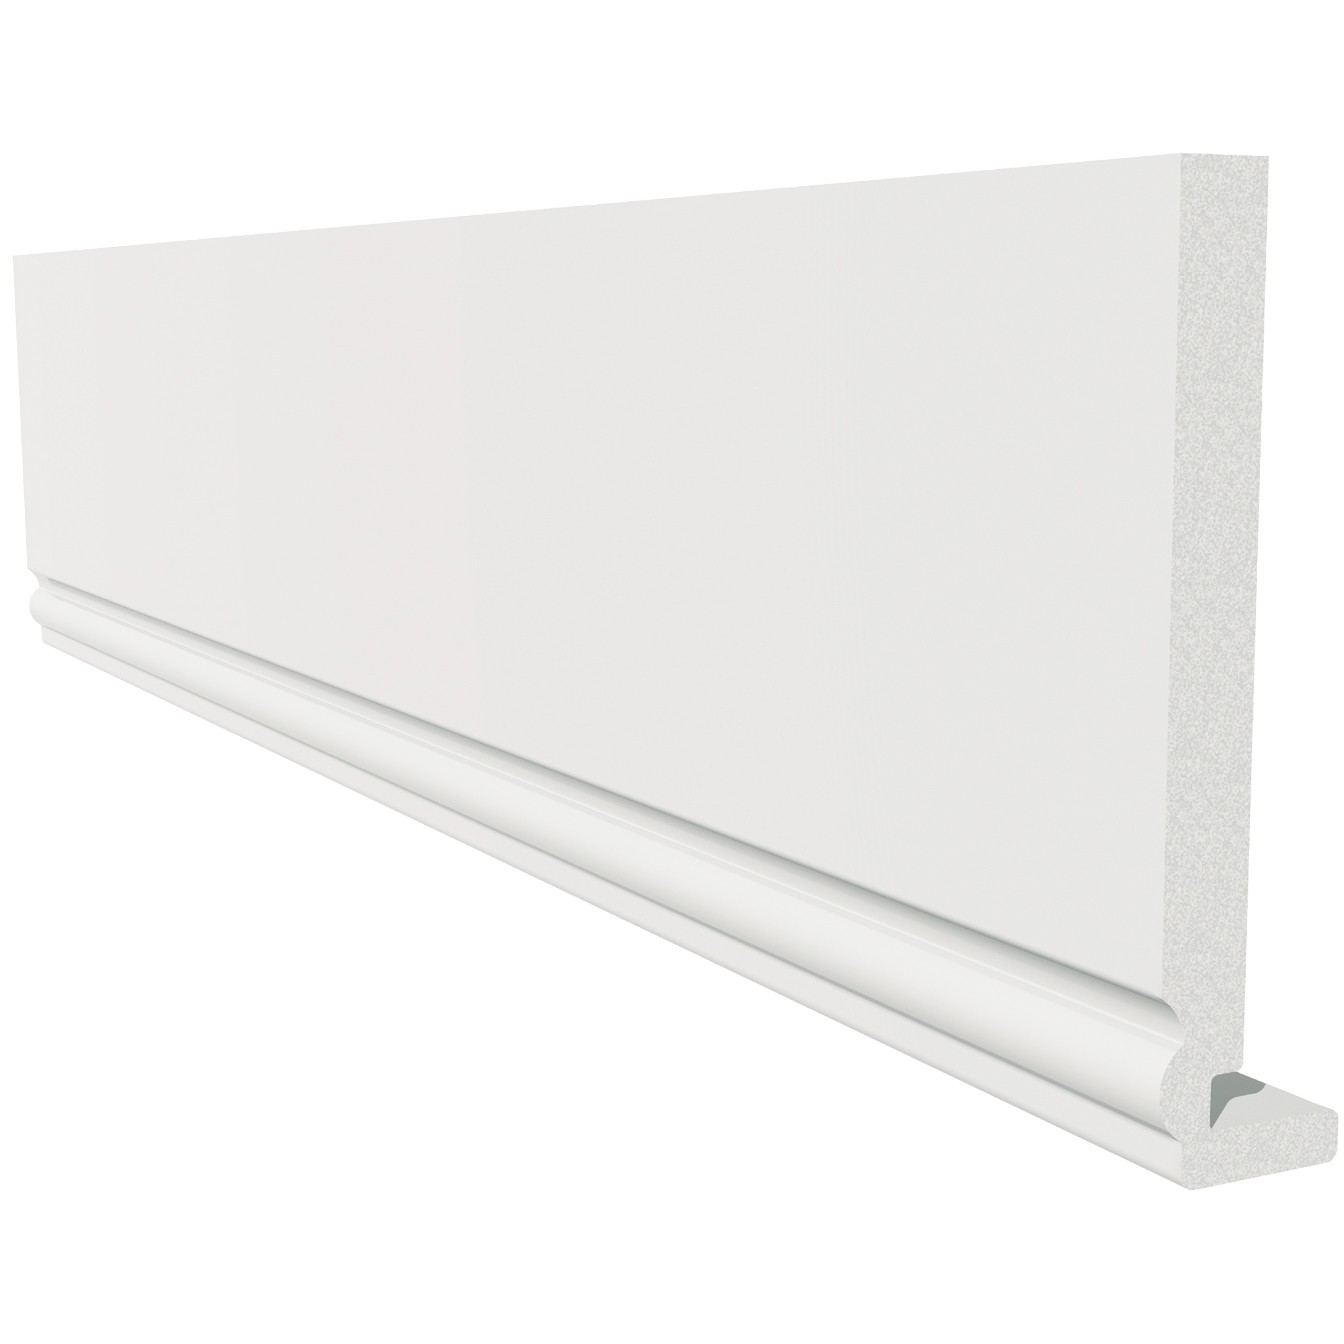 Freefoam Magnum Ogee 18mm Fascia Board - White, 405mm, 2.5 metre